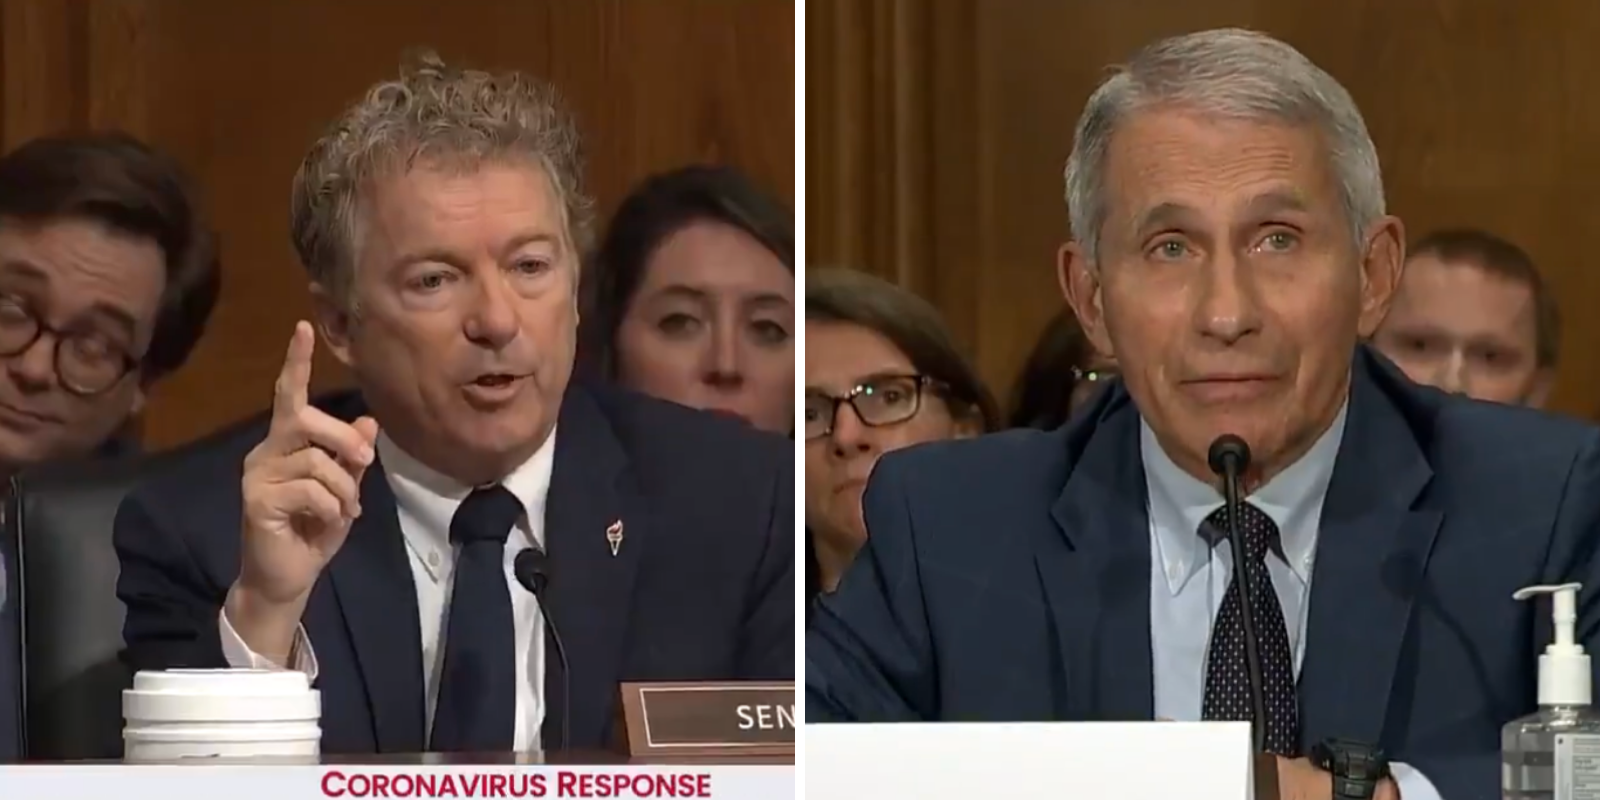 BREAKING: Rand Paul confronts Fauci over 'gain of function' research at Wuhan lab